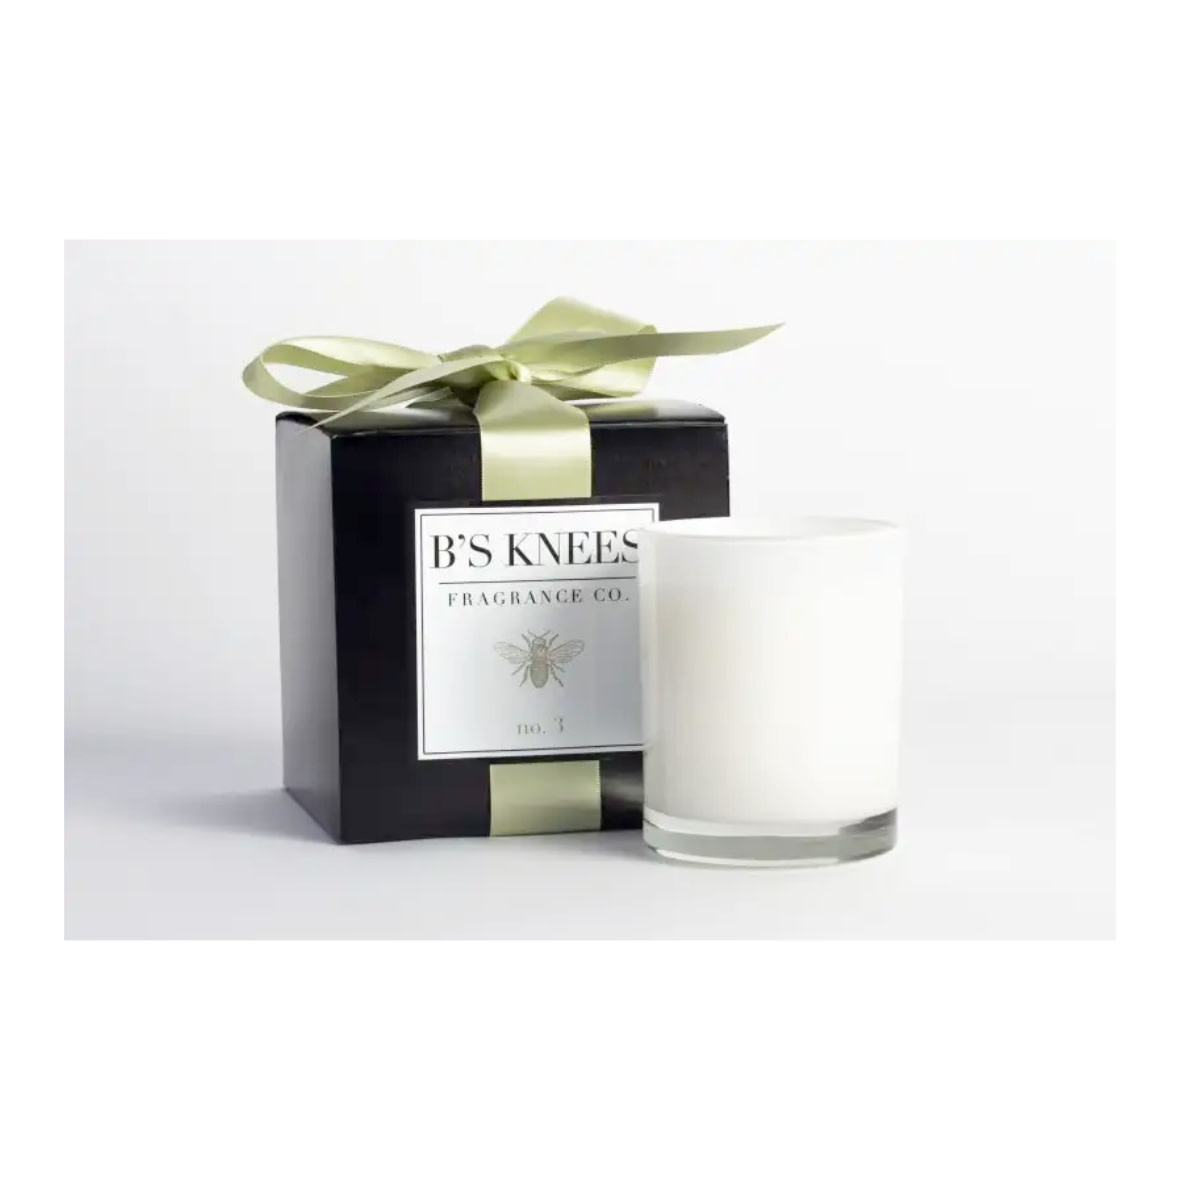 B's Knees Fragrance Co. B's Knees No 3 One Wick White Candle